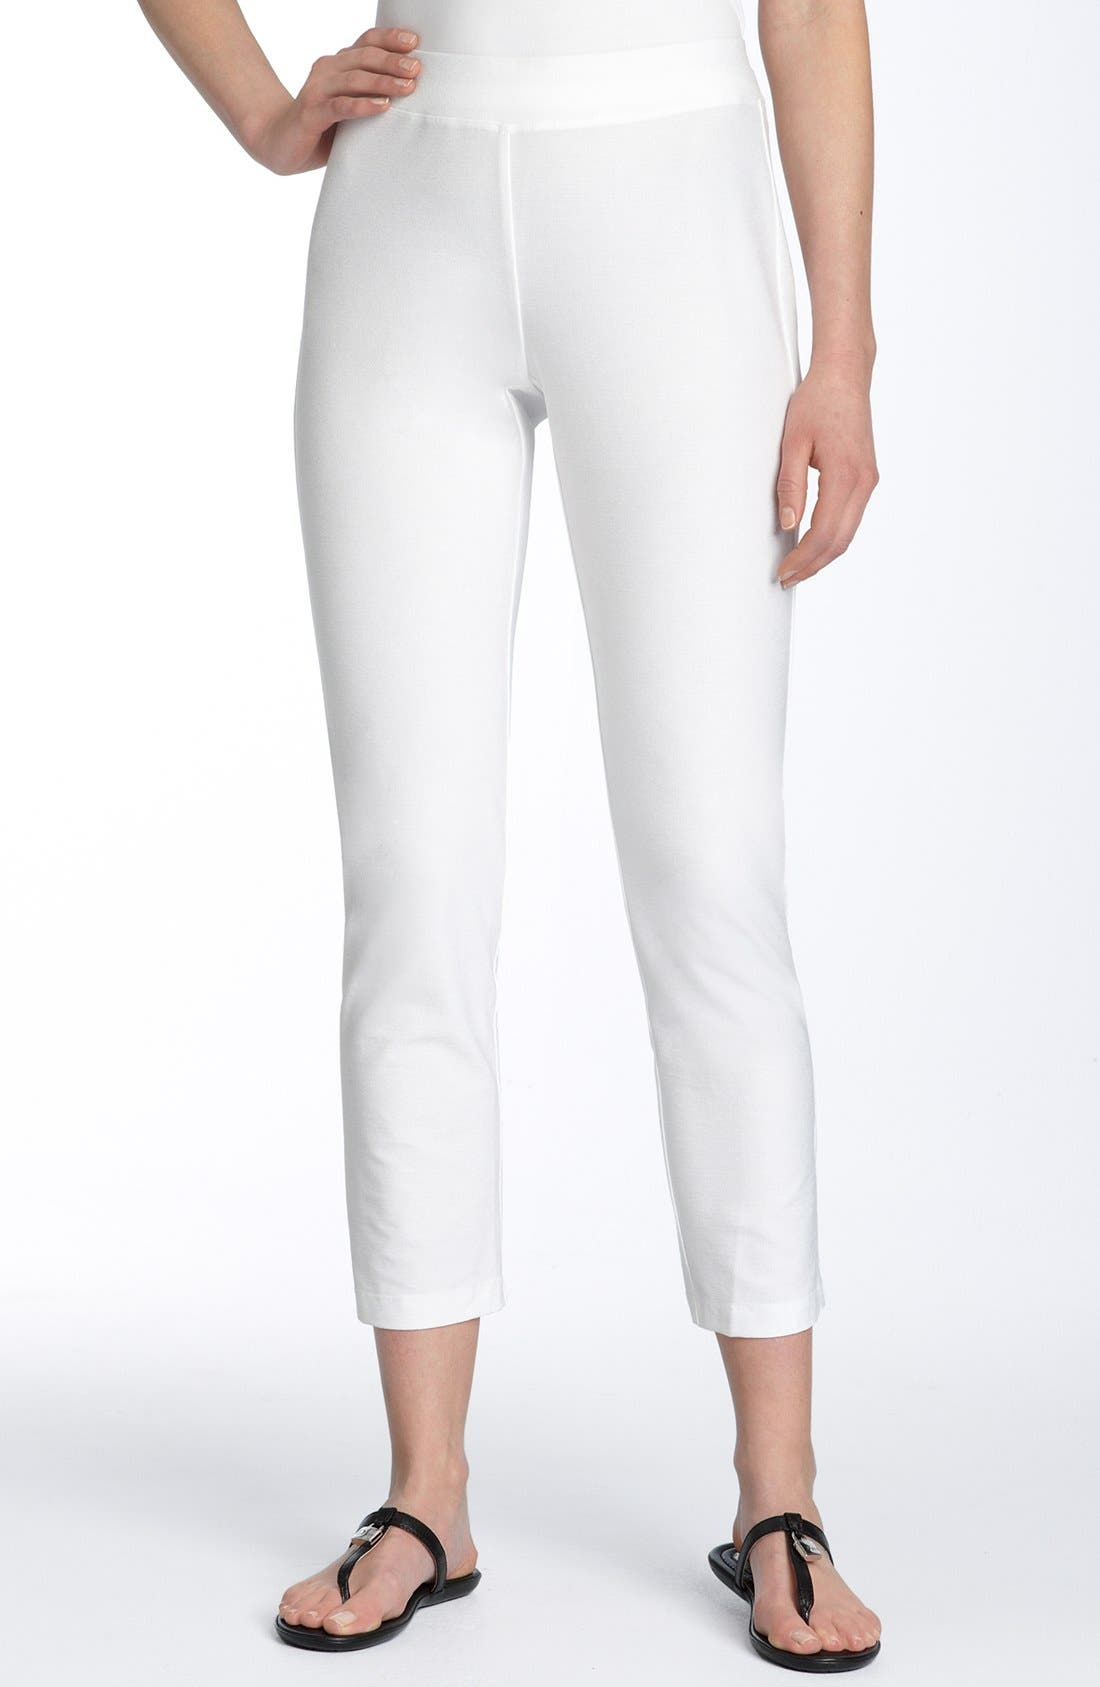 EILEEN FISHER, Crepe Ankle Pants, Main thumbnail 1, color, WHITE